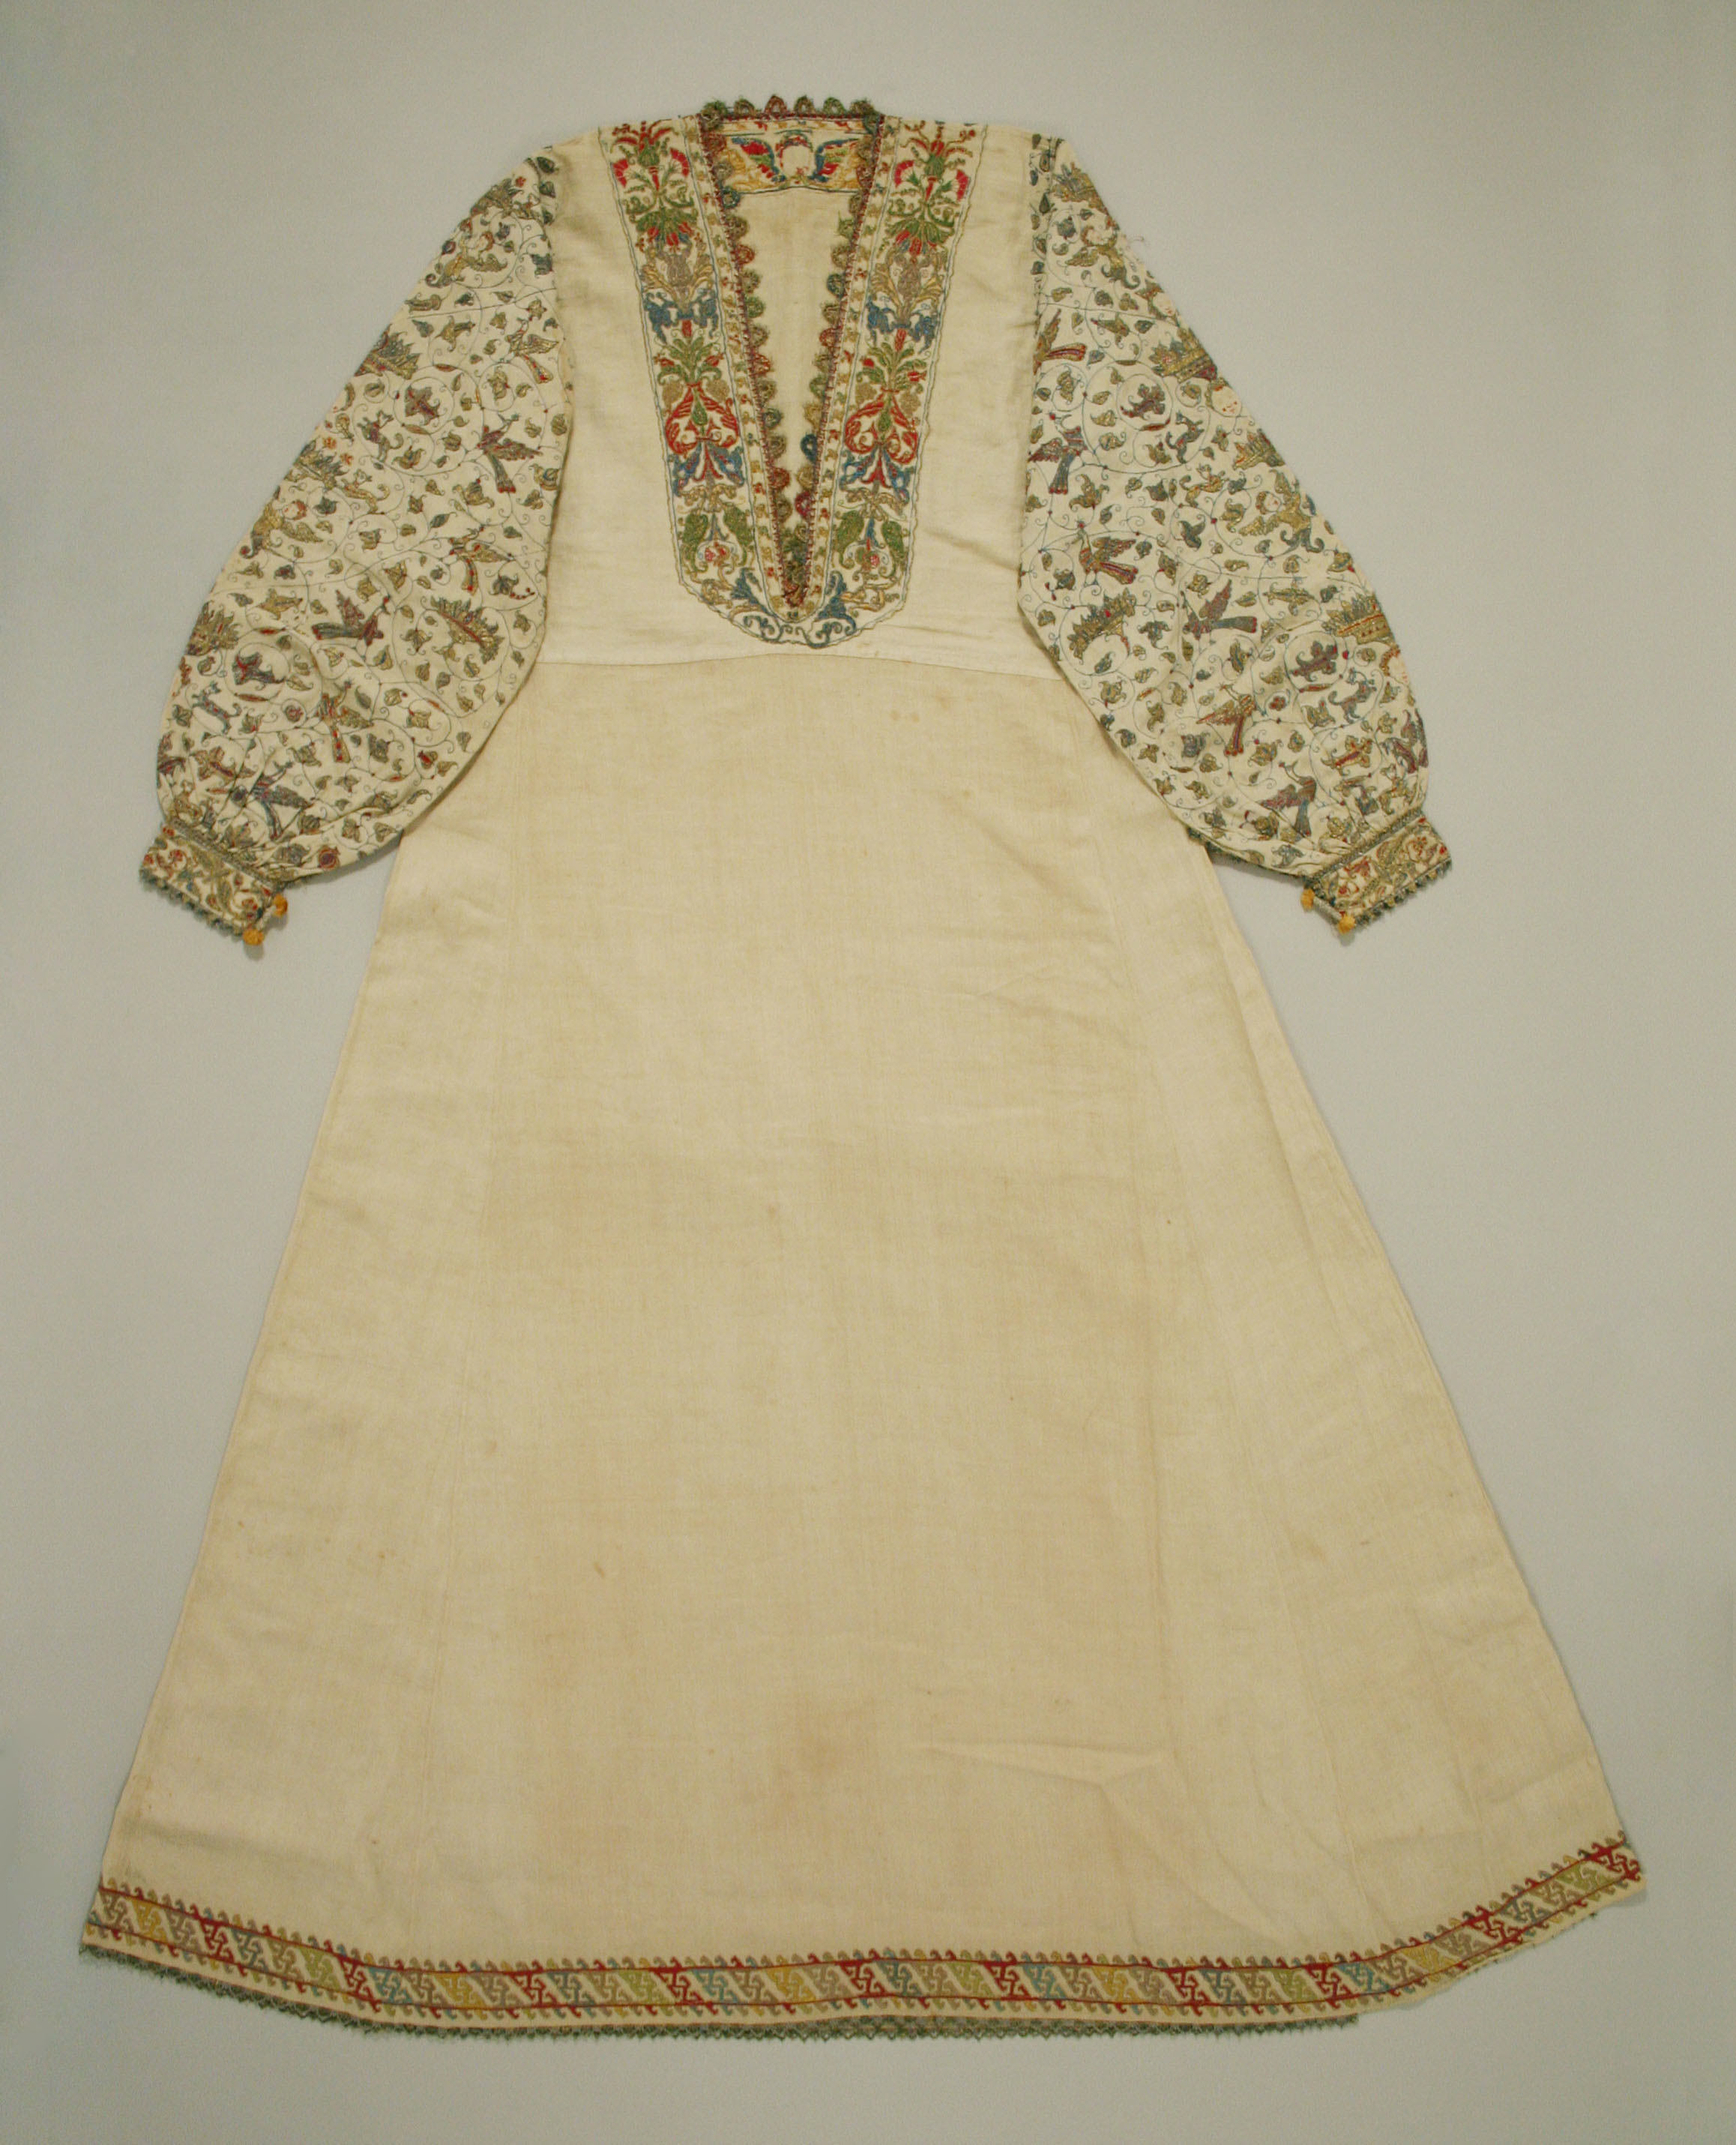 16th century woman's smock (embroidered) in The Metropolitan Museum of Art